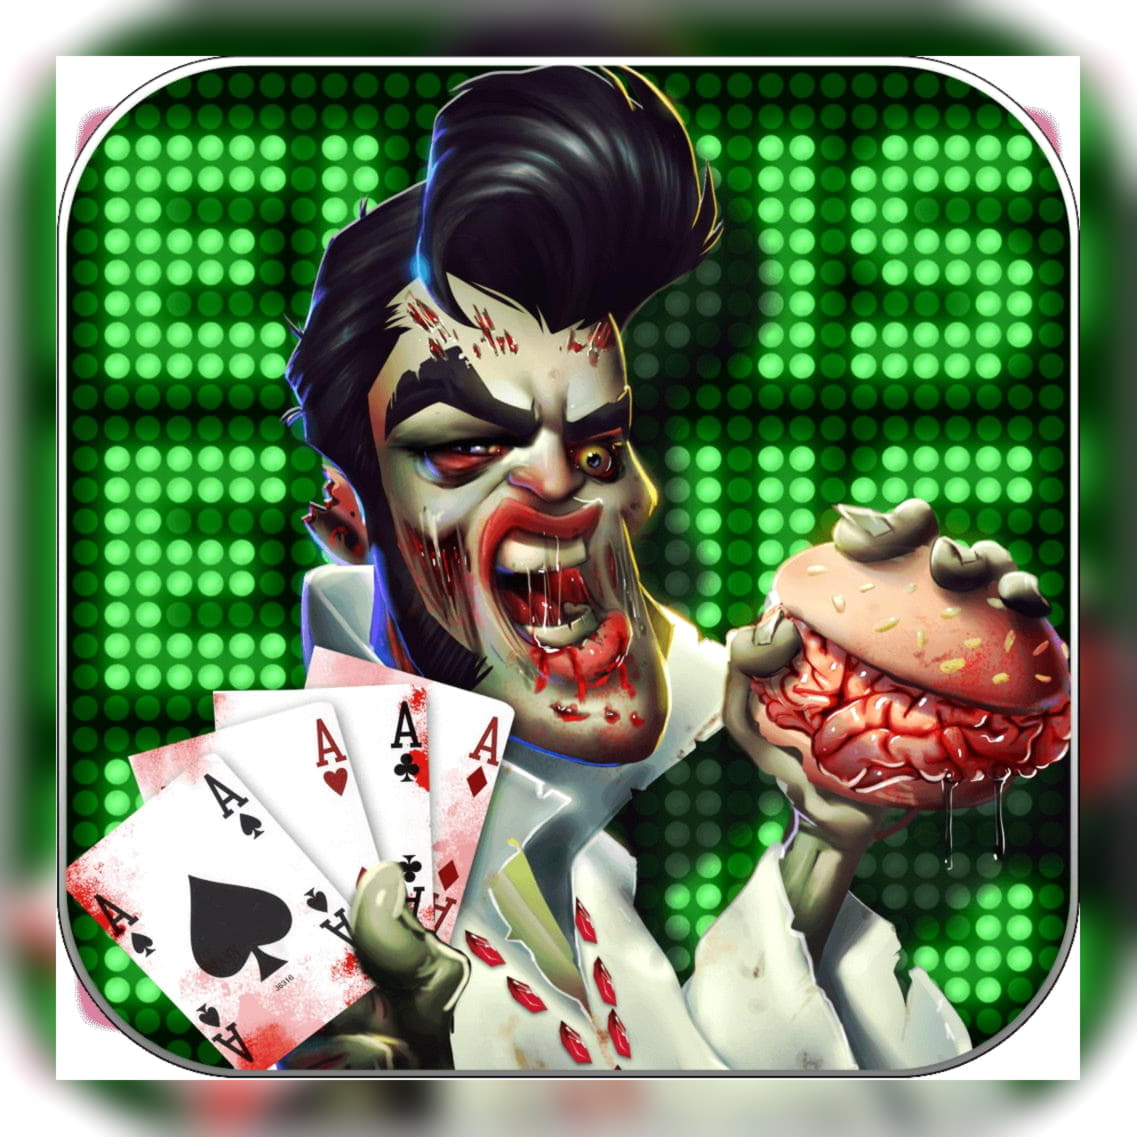 $4820 no deposit casino bonus at 888 Casino